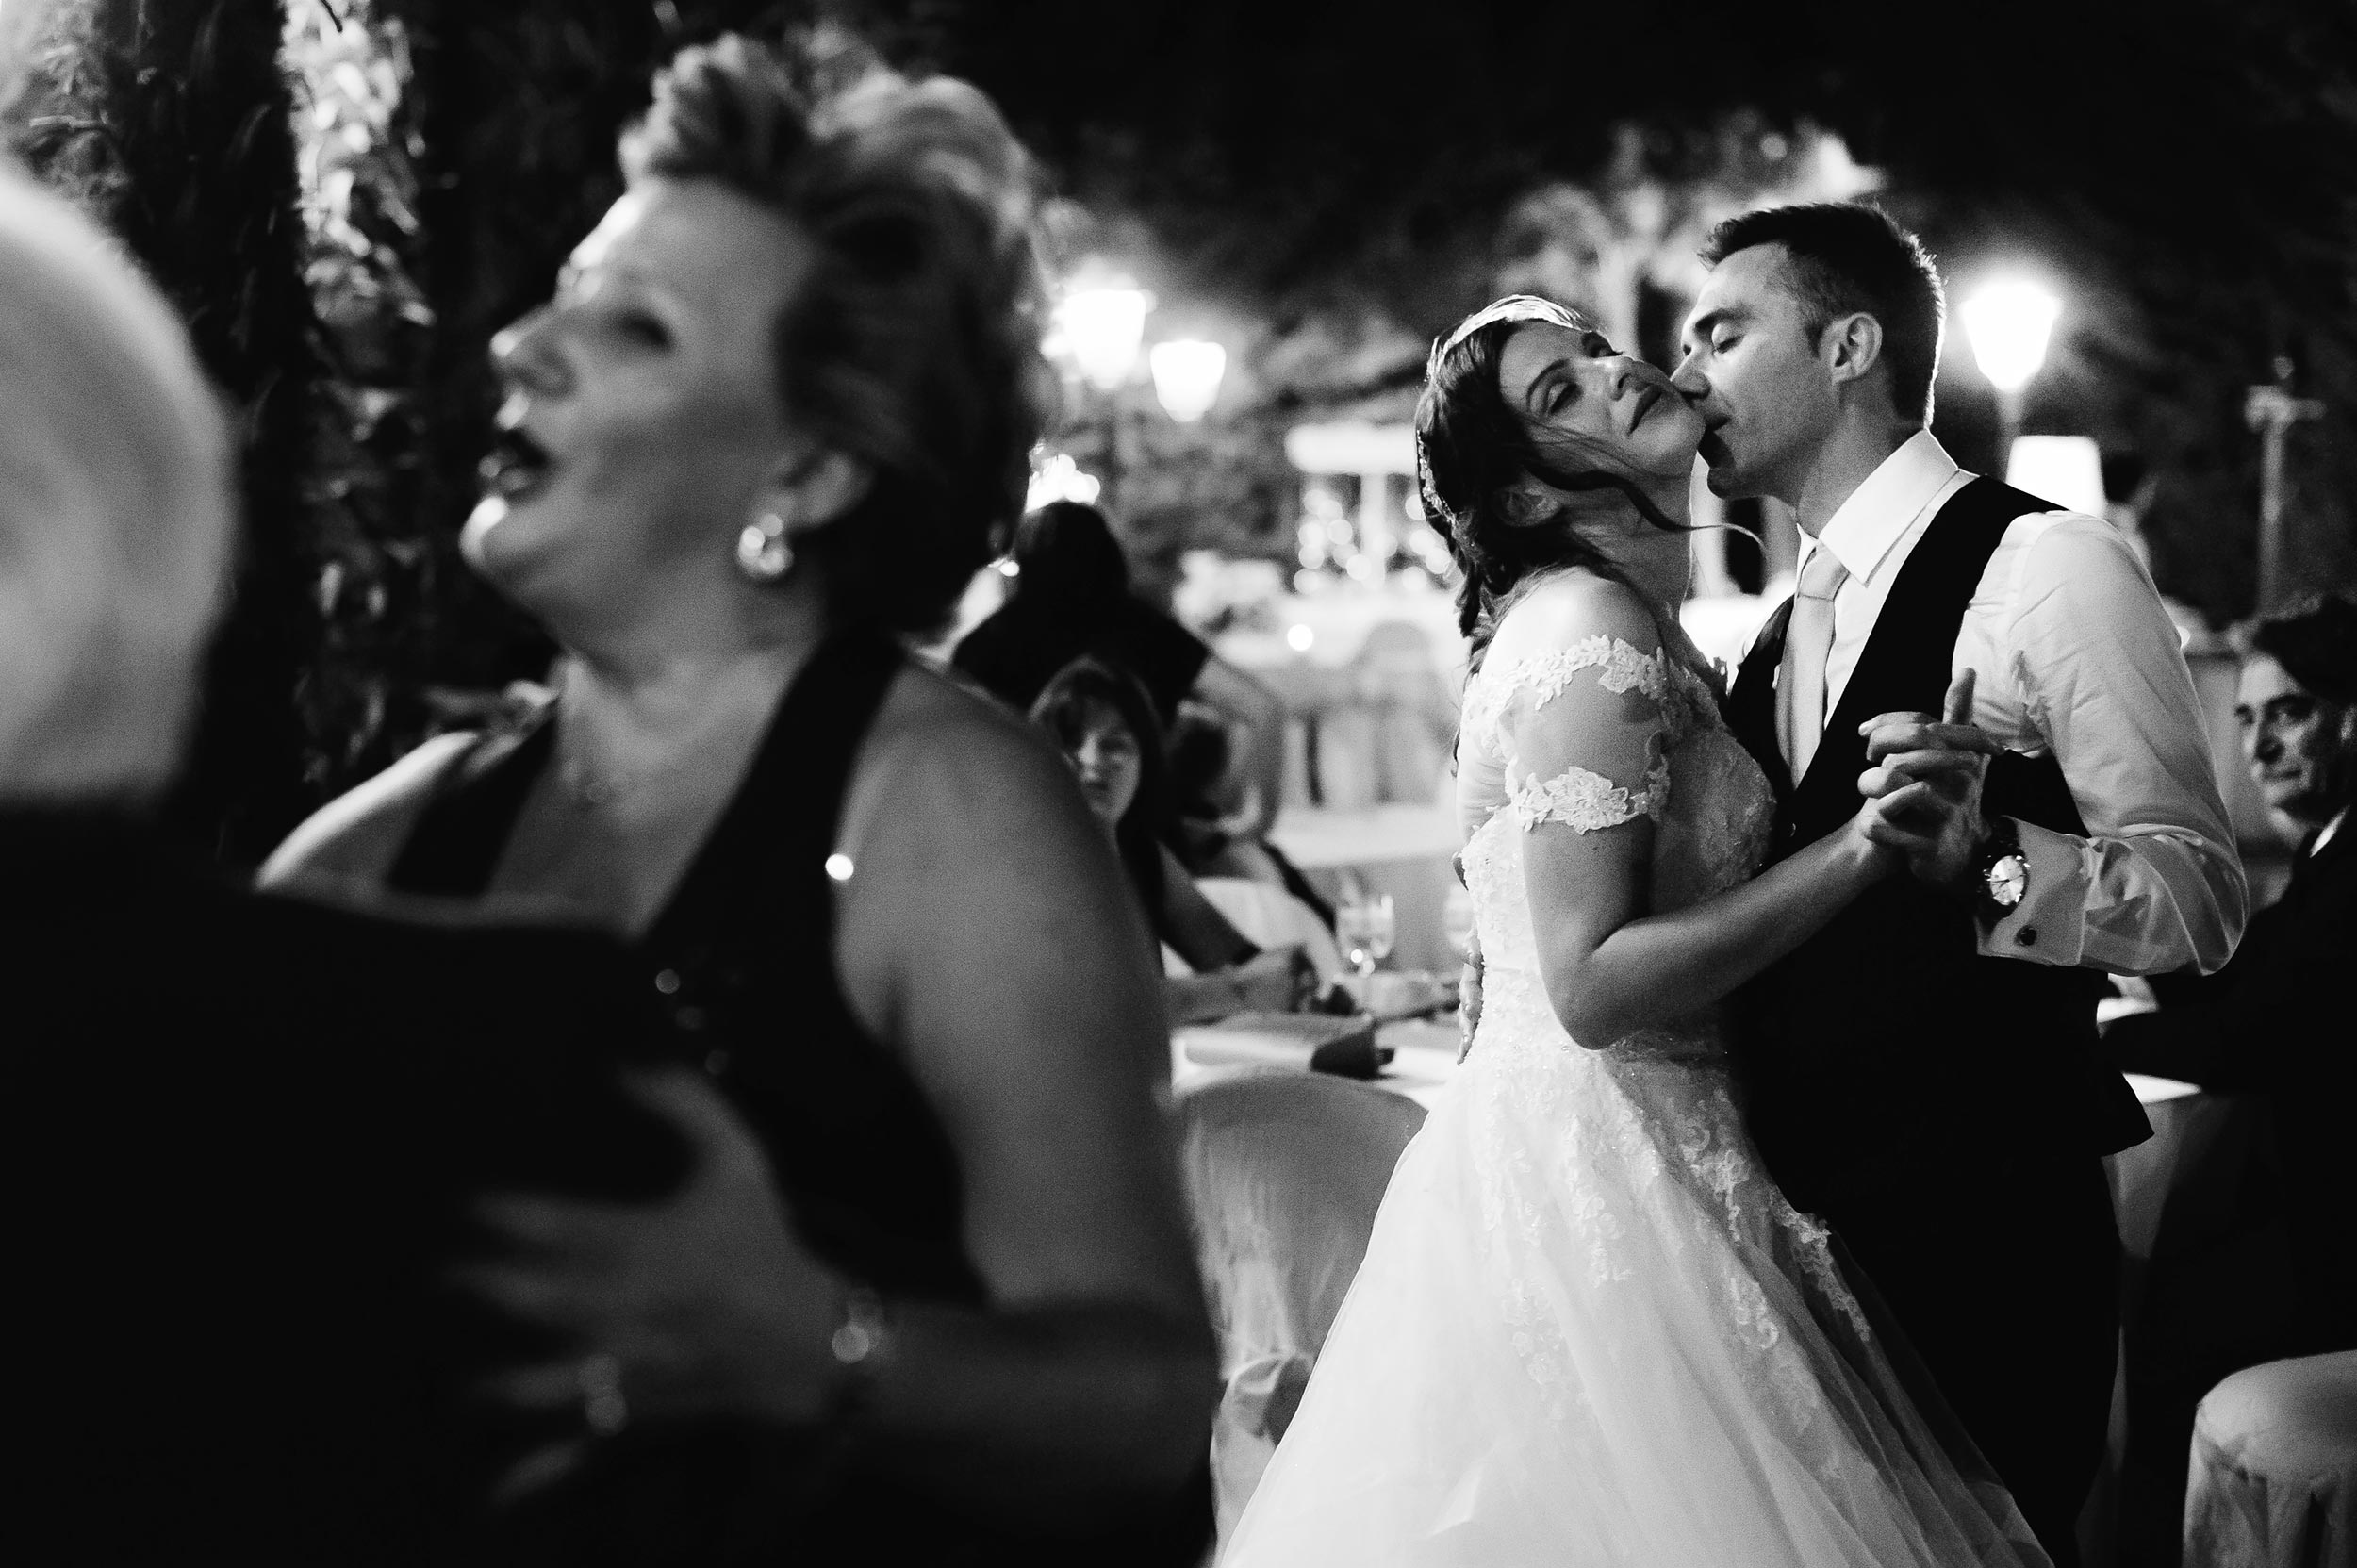 bride-and-groom-romantic-dance-during-the-reception-black-and-white-wedding-photography.jpg